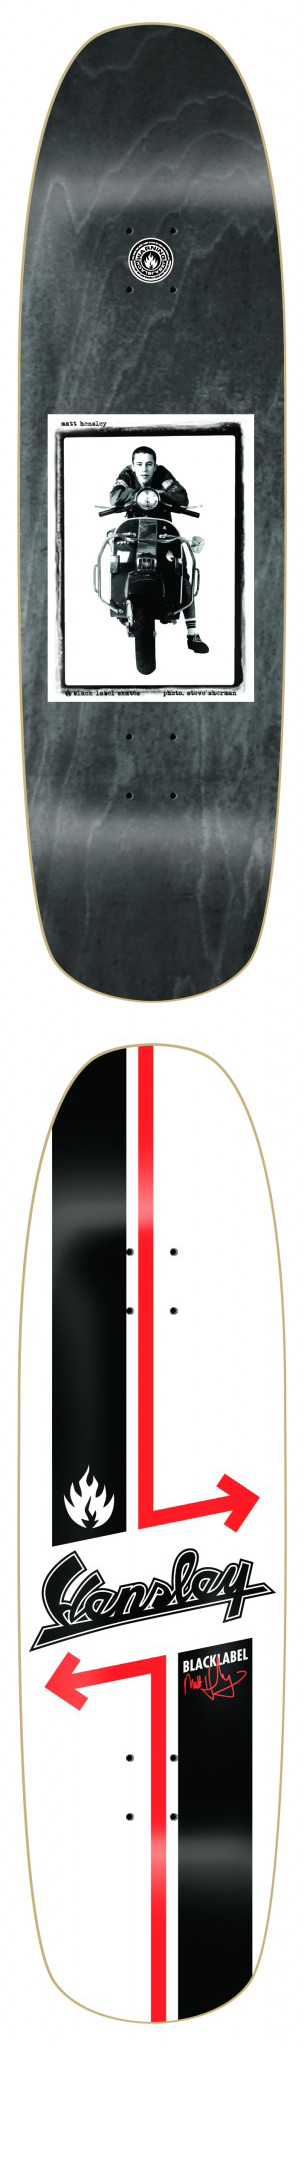 Hensley Vespa Scooter Black Label Skateboard Deck